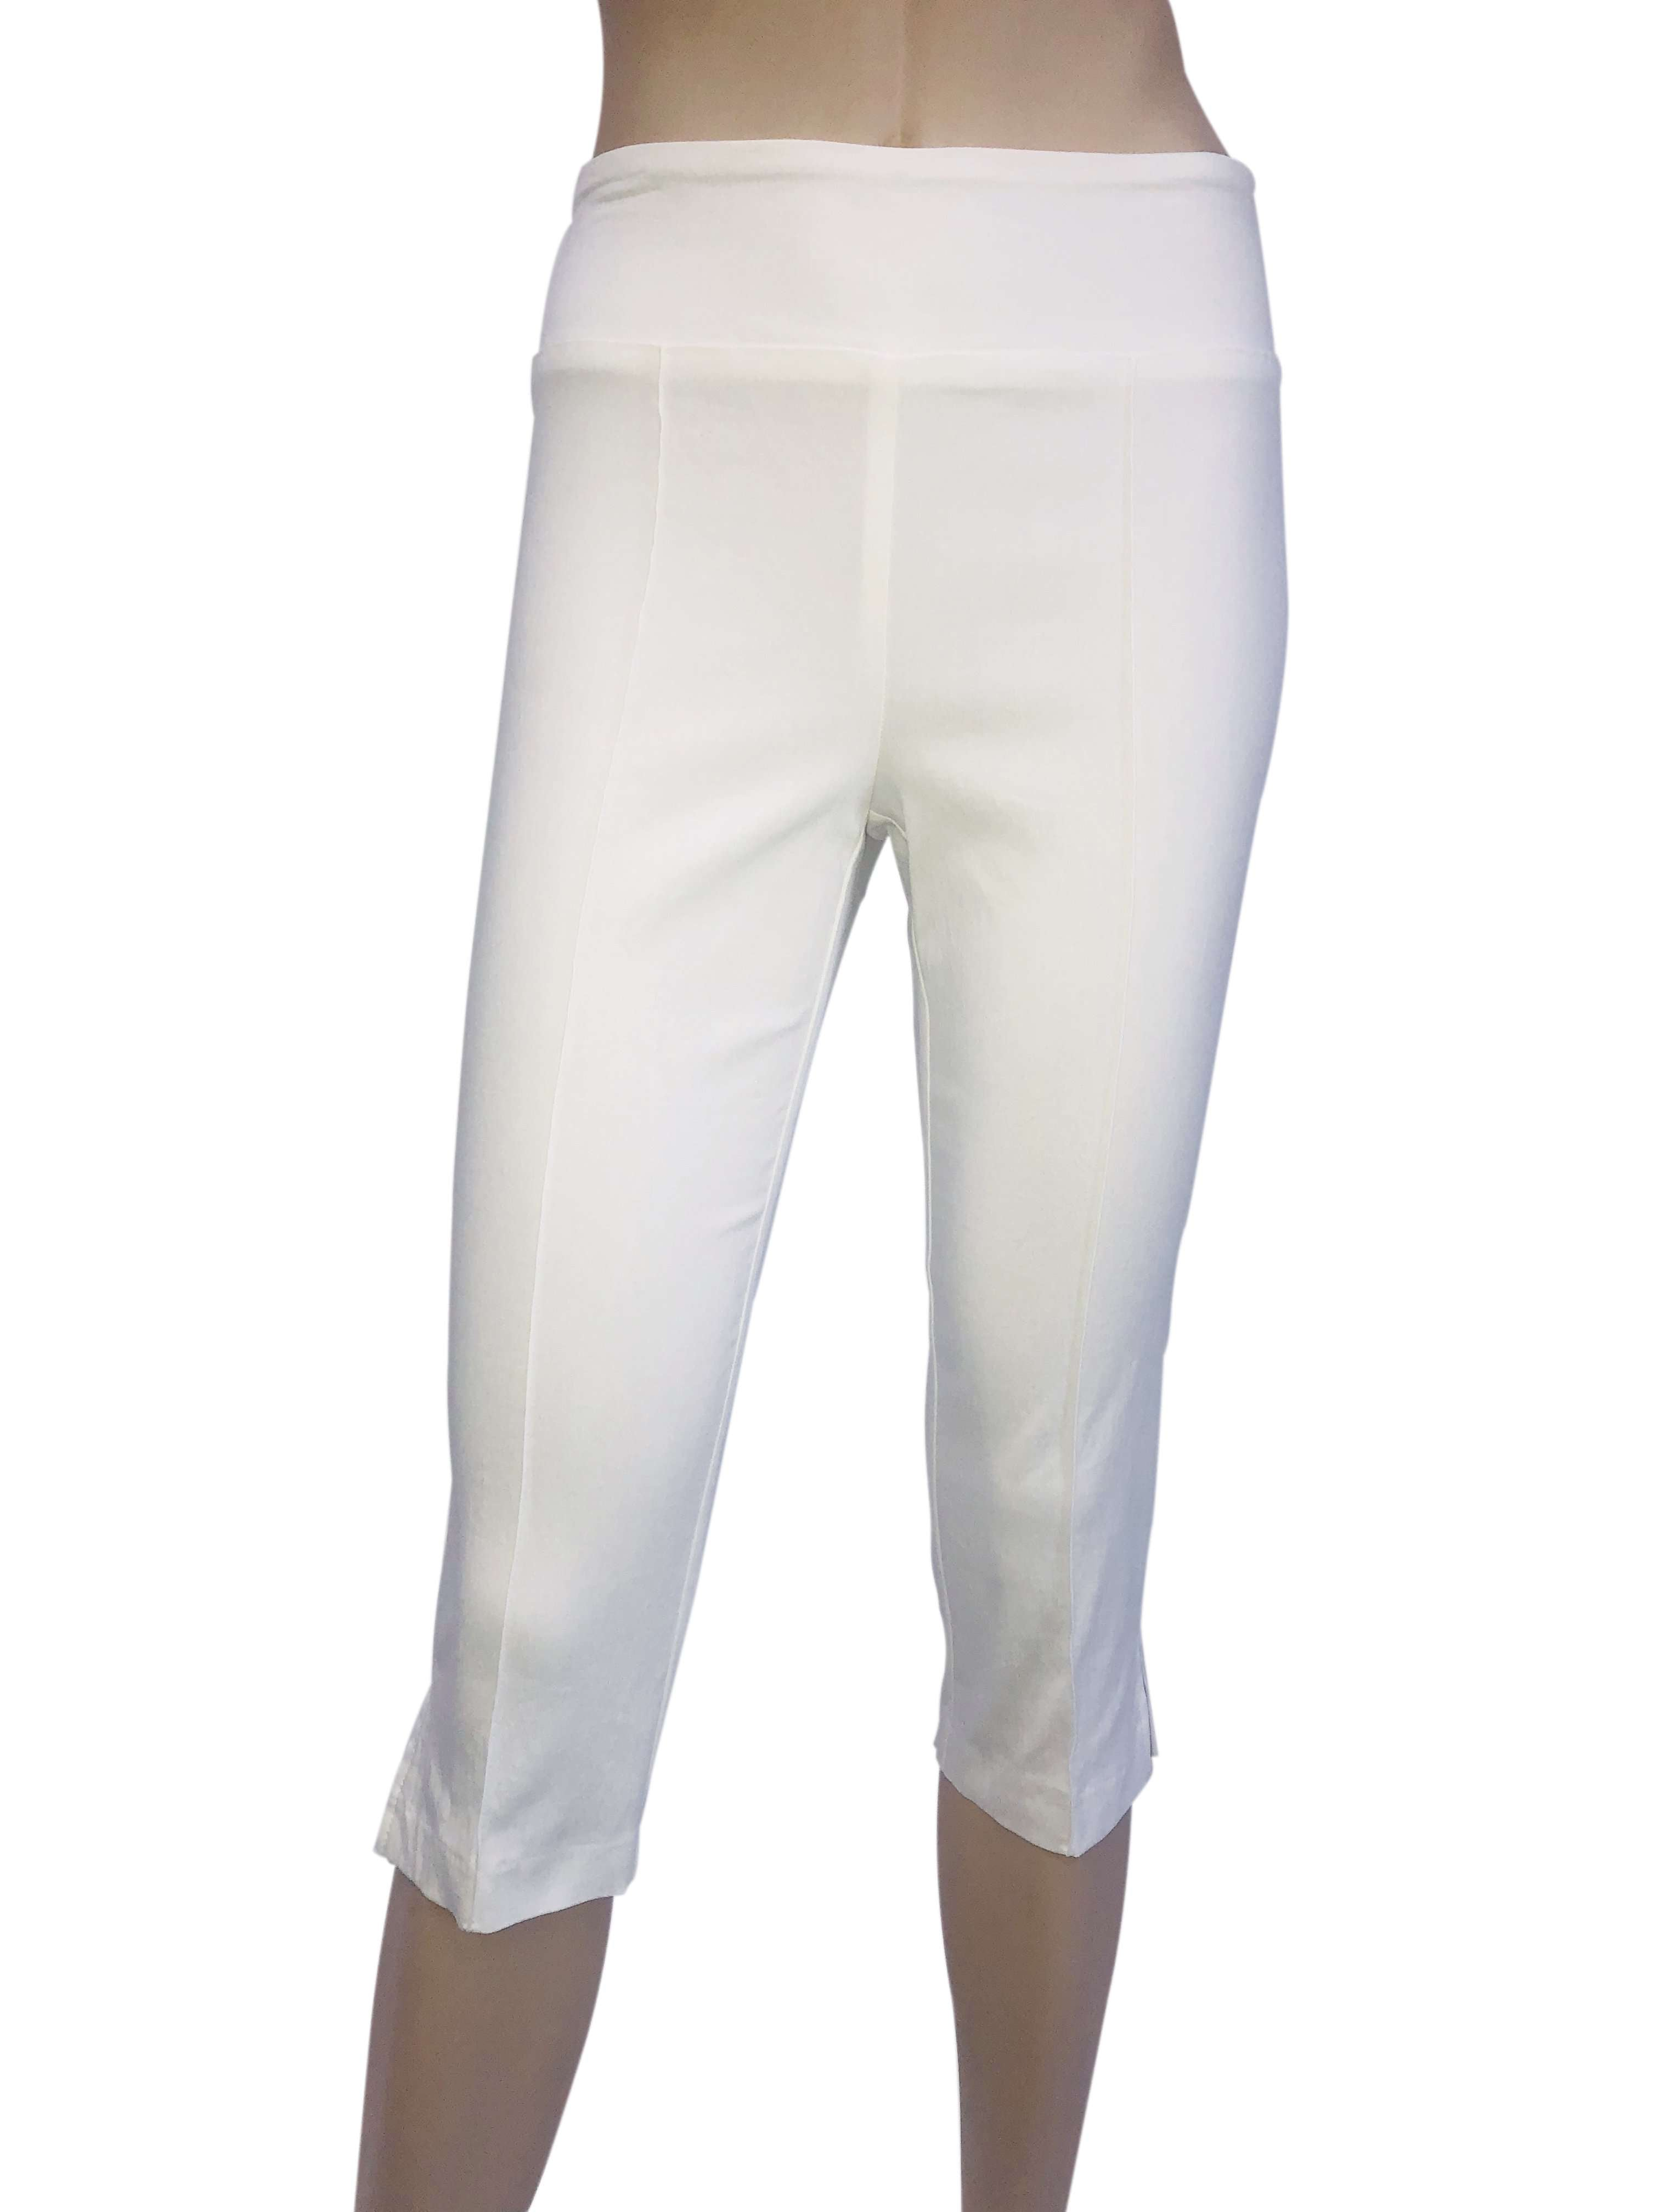 Women's Capri Ivory - Miracle Fit - Made in Canada - Yvonne Marie - Yvonne Marie